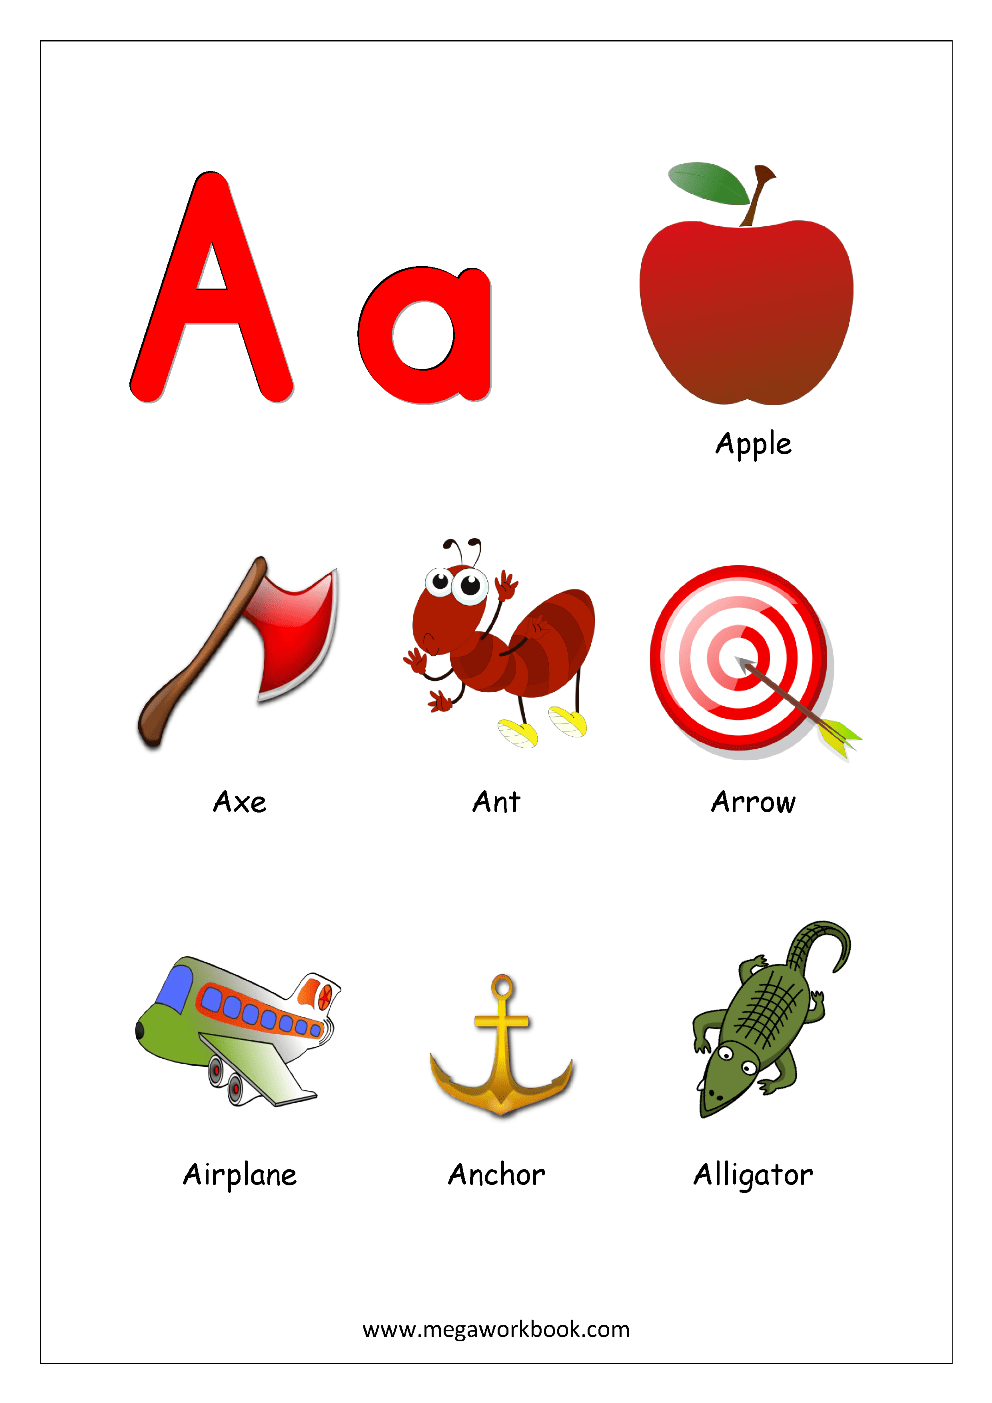 Pictures Of Things That Start With The Letter A : pictures, things, start, letter, Things, Start, Letter, Alphabet, Chart, Objects, Beginning, Alphabets, Pictures, MegaWorkbook